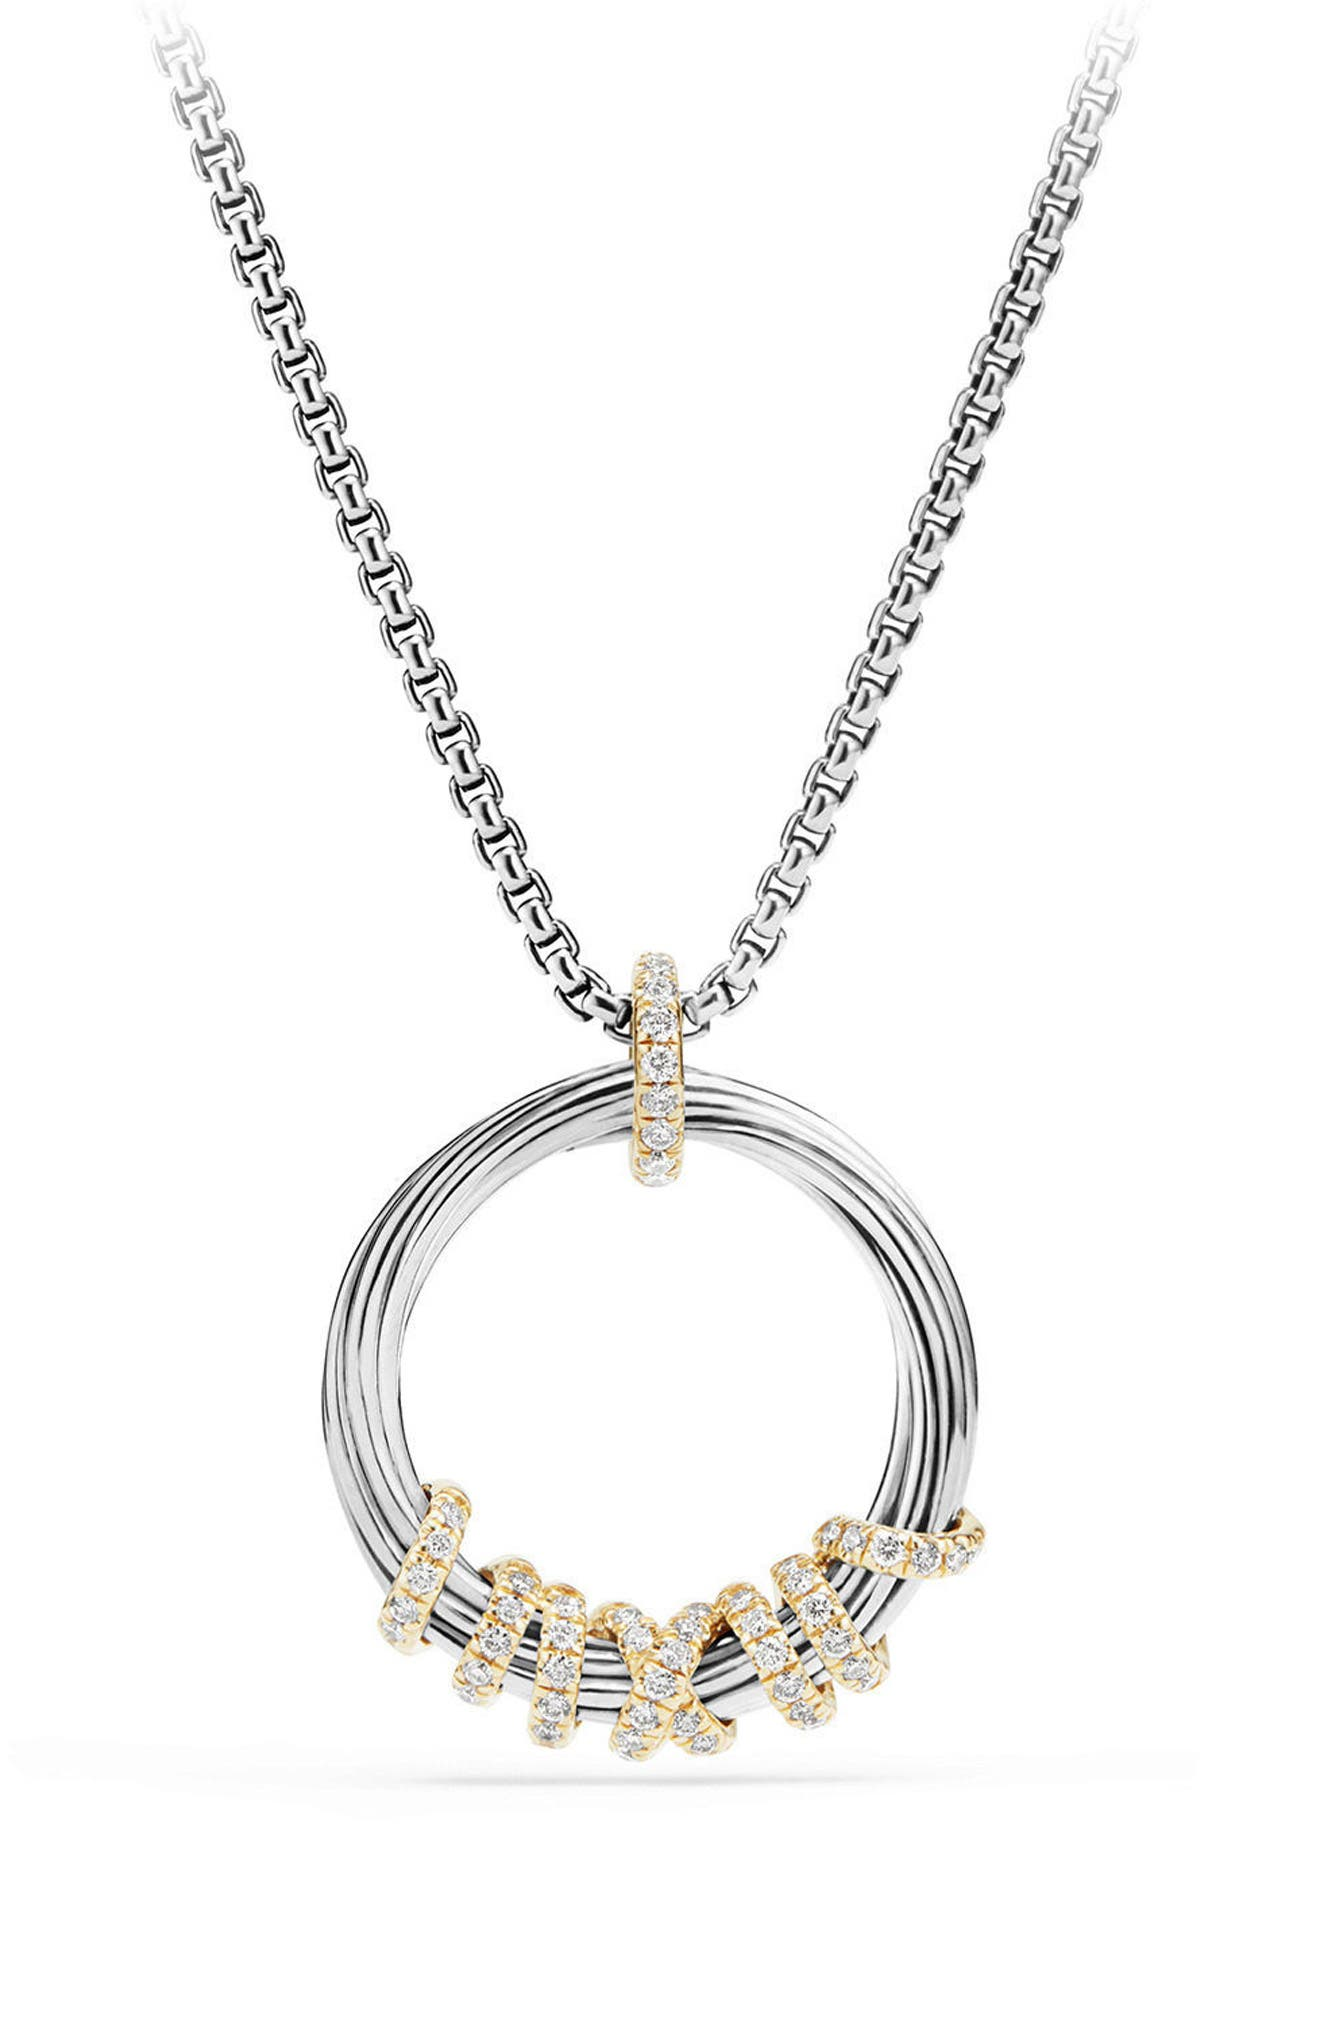 Helena Medium Pendant Necklace with Diamonds & 18K Gold,                             Main thumbnail 1, color,                             SILVER/ GOLD